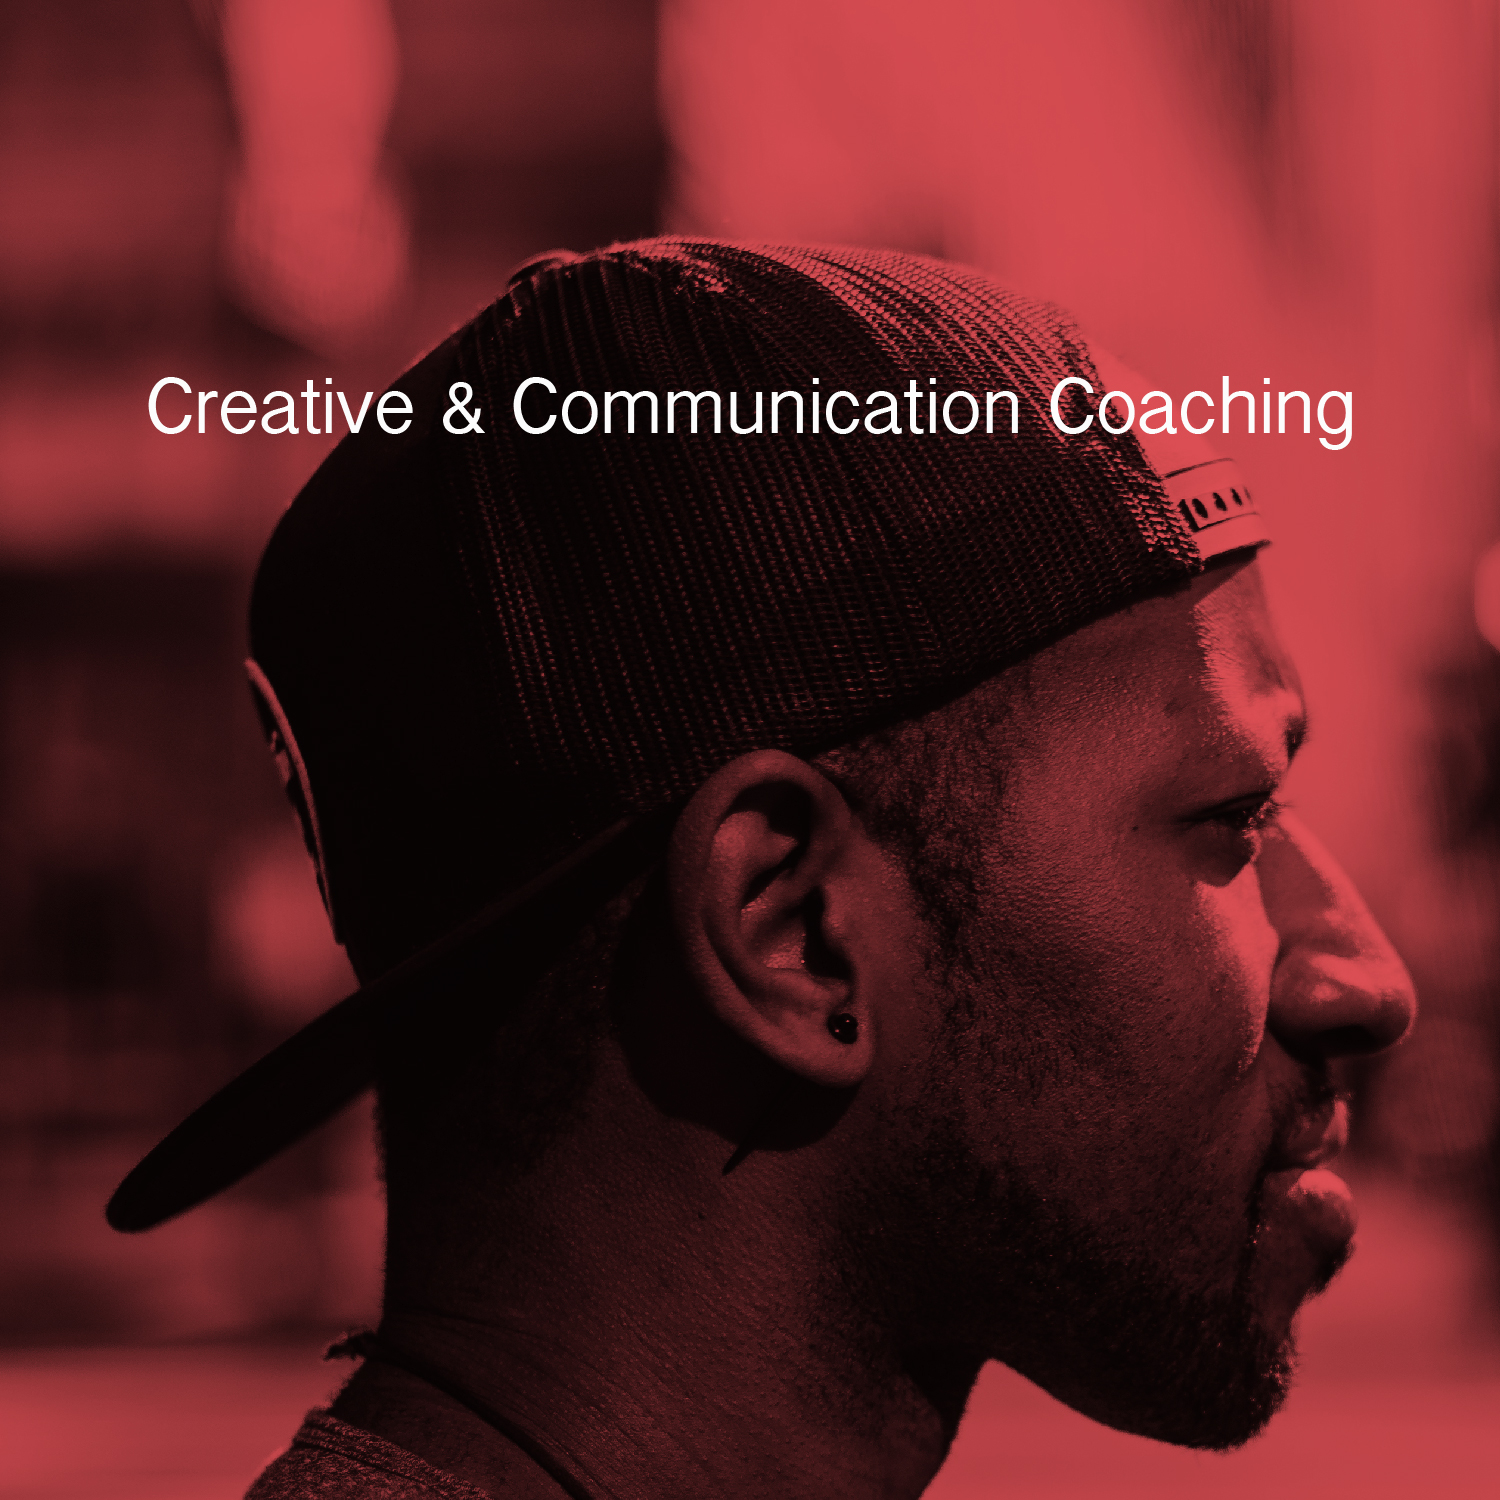 NEXT COACHING GROUP STARTS IN OCTOBER